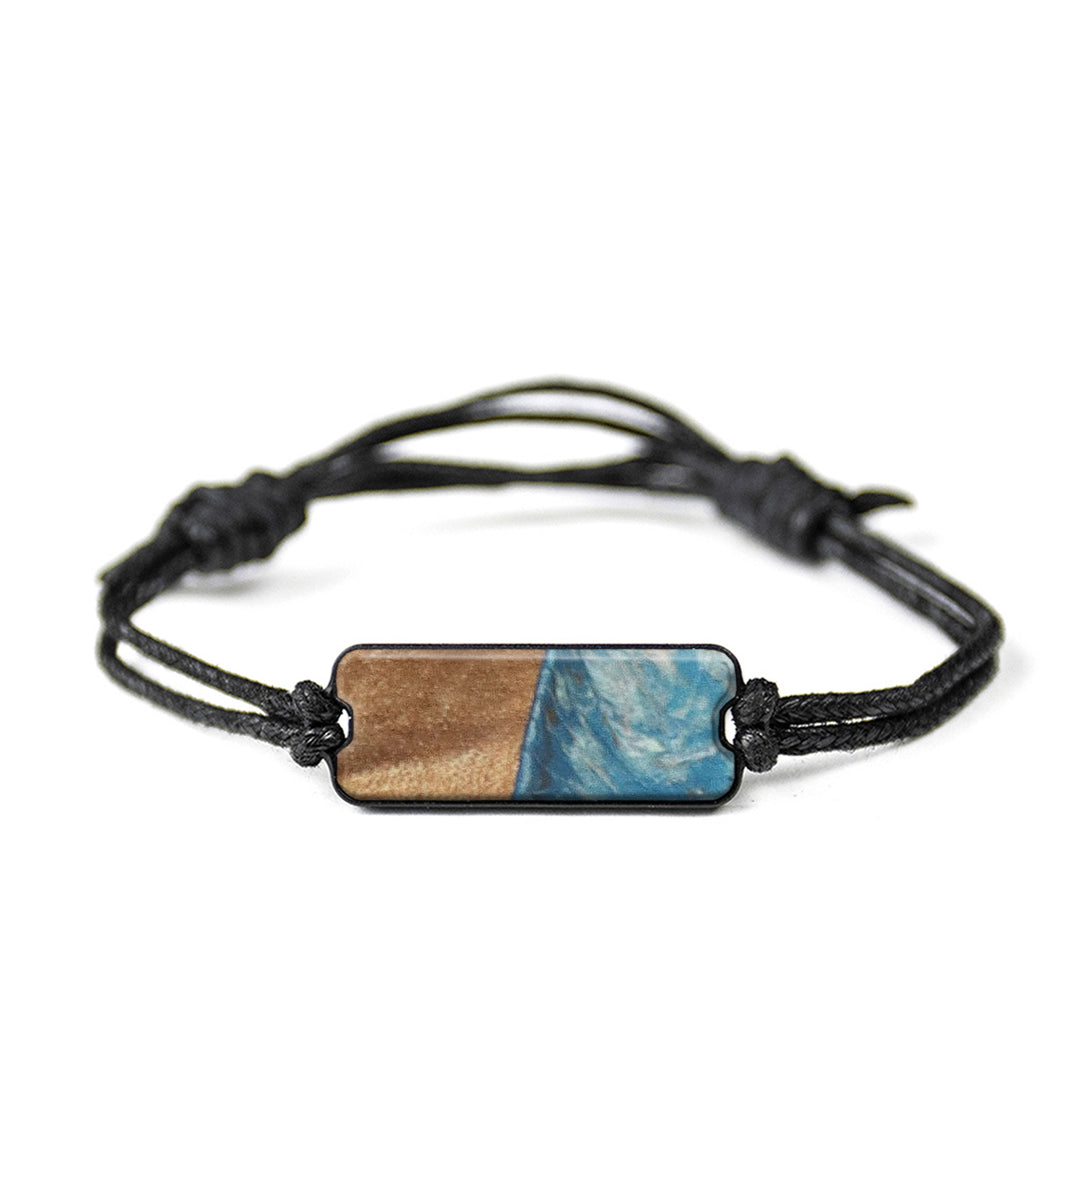 Classic Wood+Resin Bracelet - Tyronda (Teal & Gold, 358121)